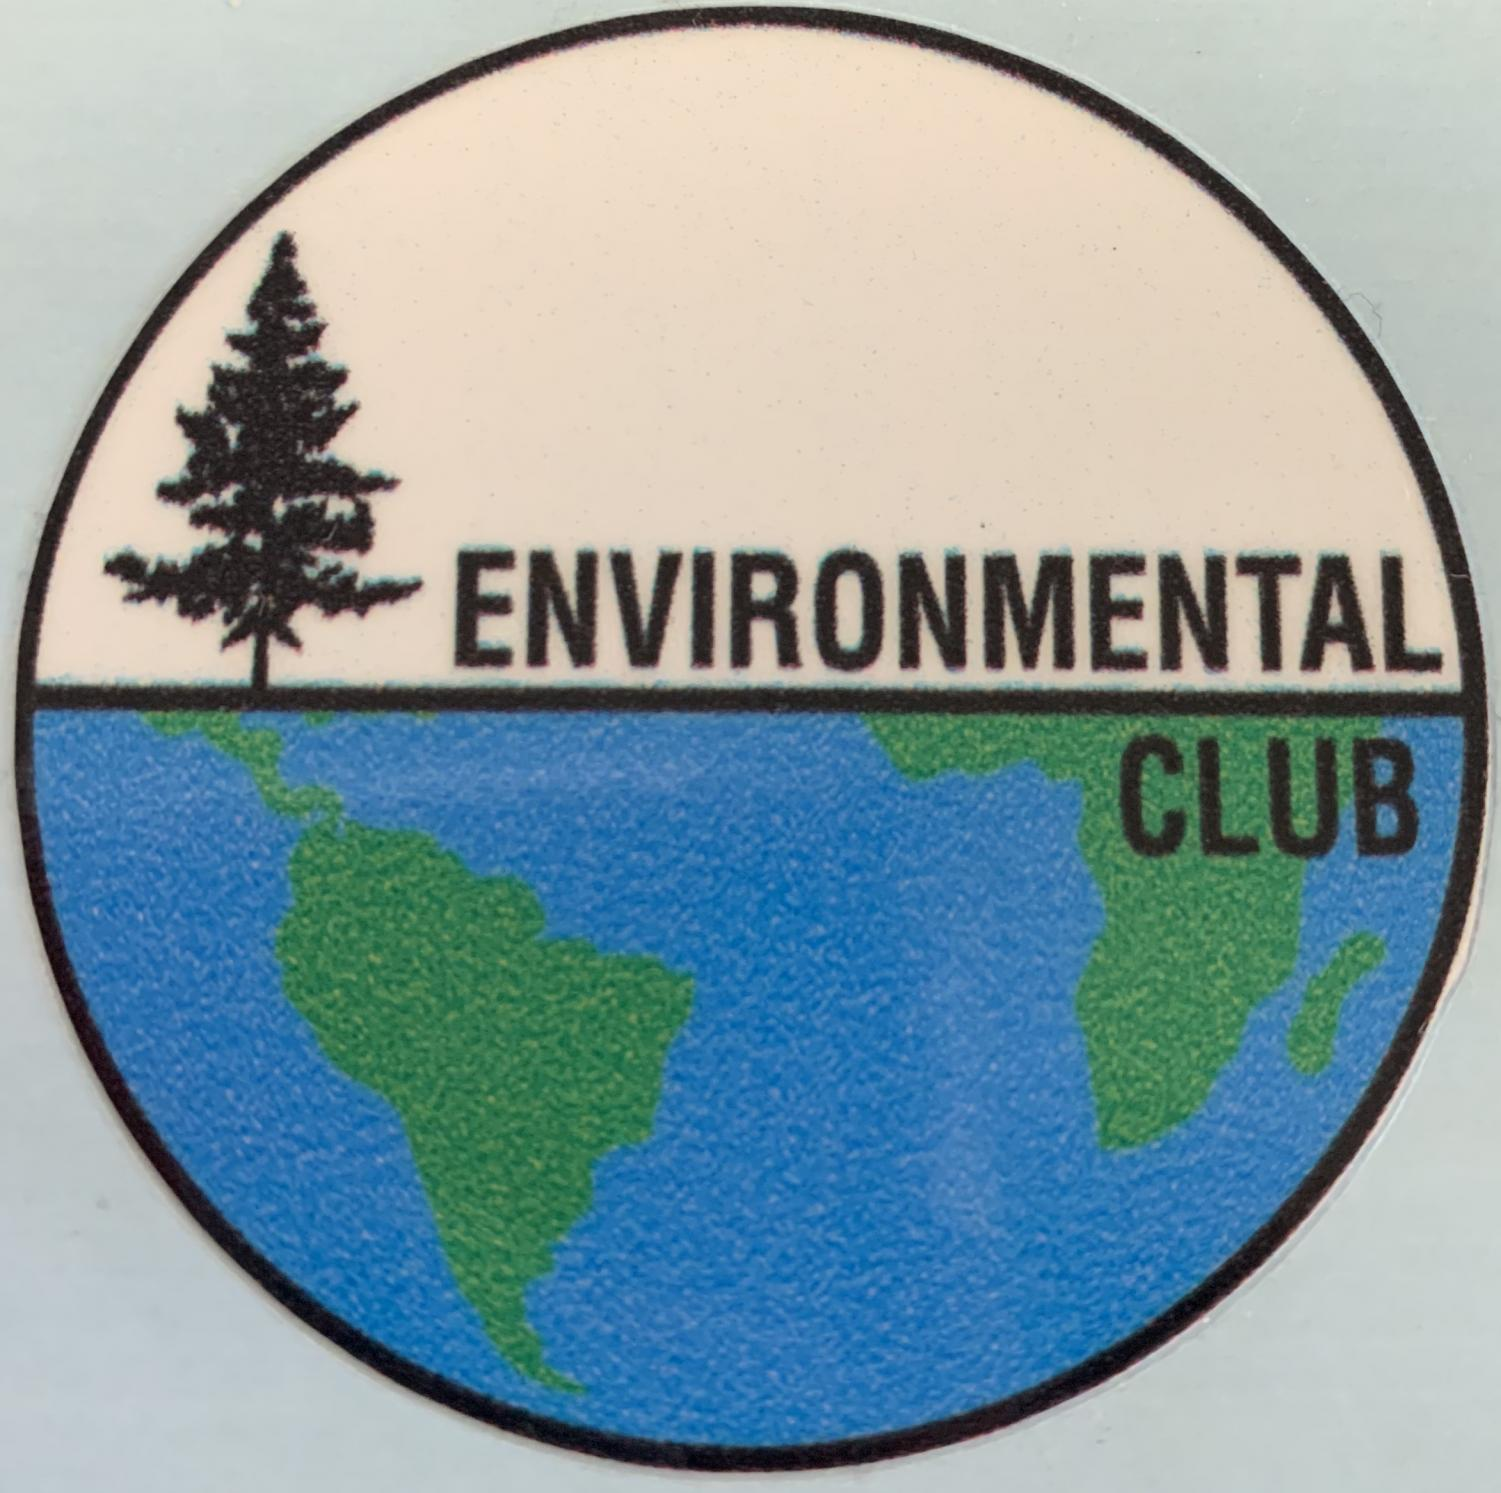 The sticker being sold by the club is one of many items the club is now selling. It was designed by the club presidents Lauren Auge, Lanny Lo, and Sierra Estrada. Along with the sticker, the club listed water bottles, straws, utensils, and reusable bags.